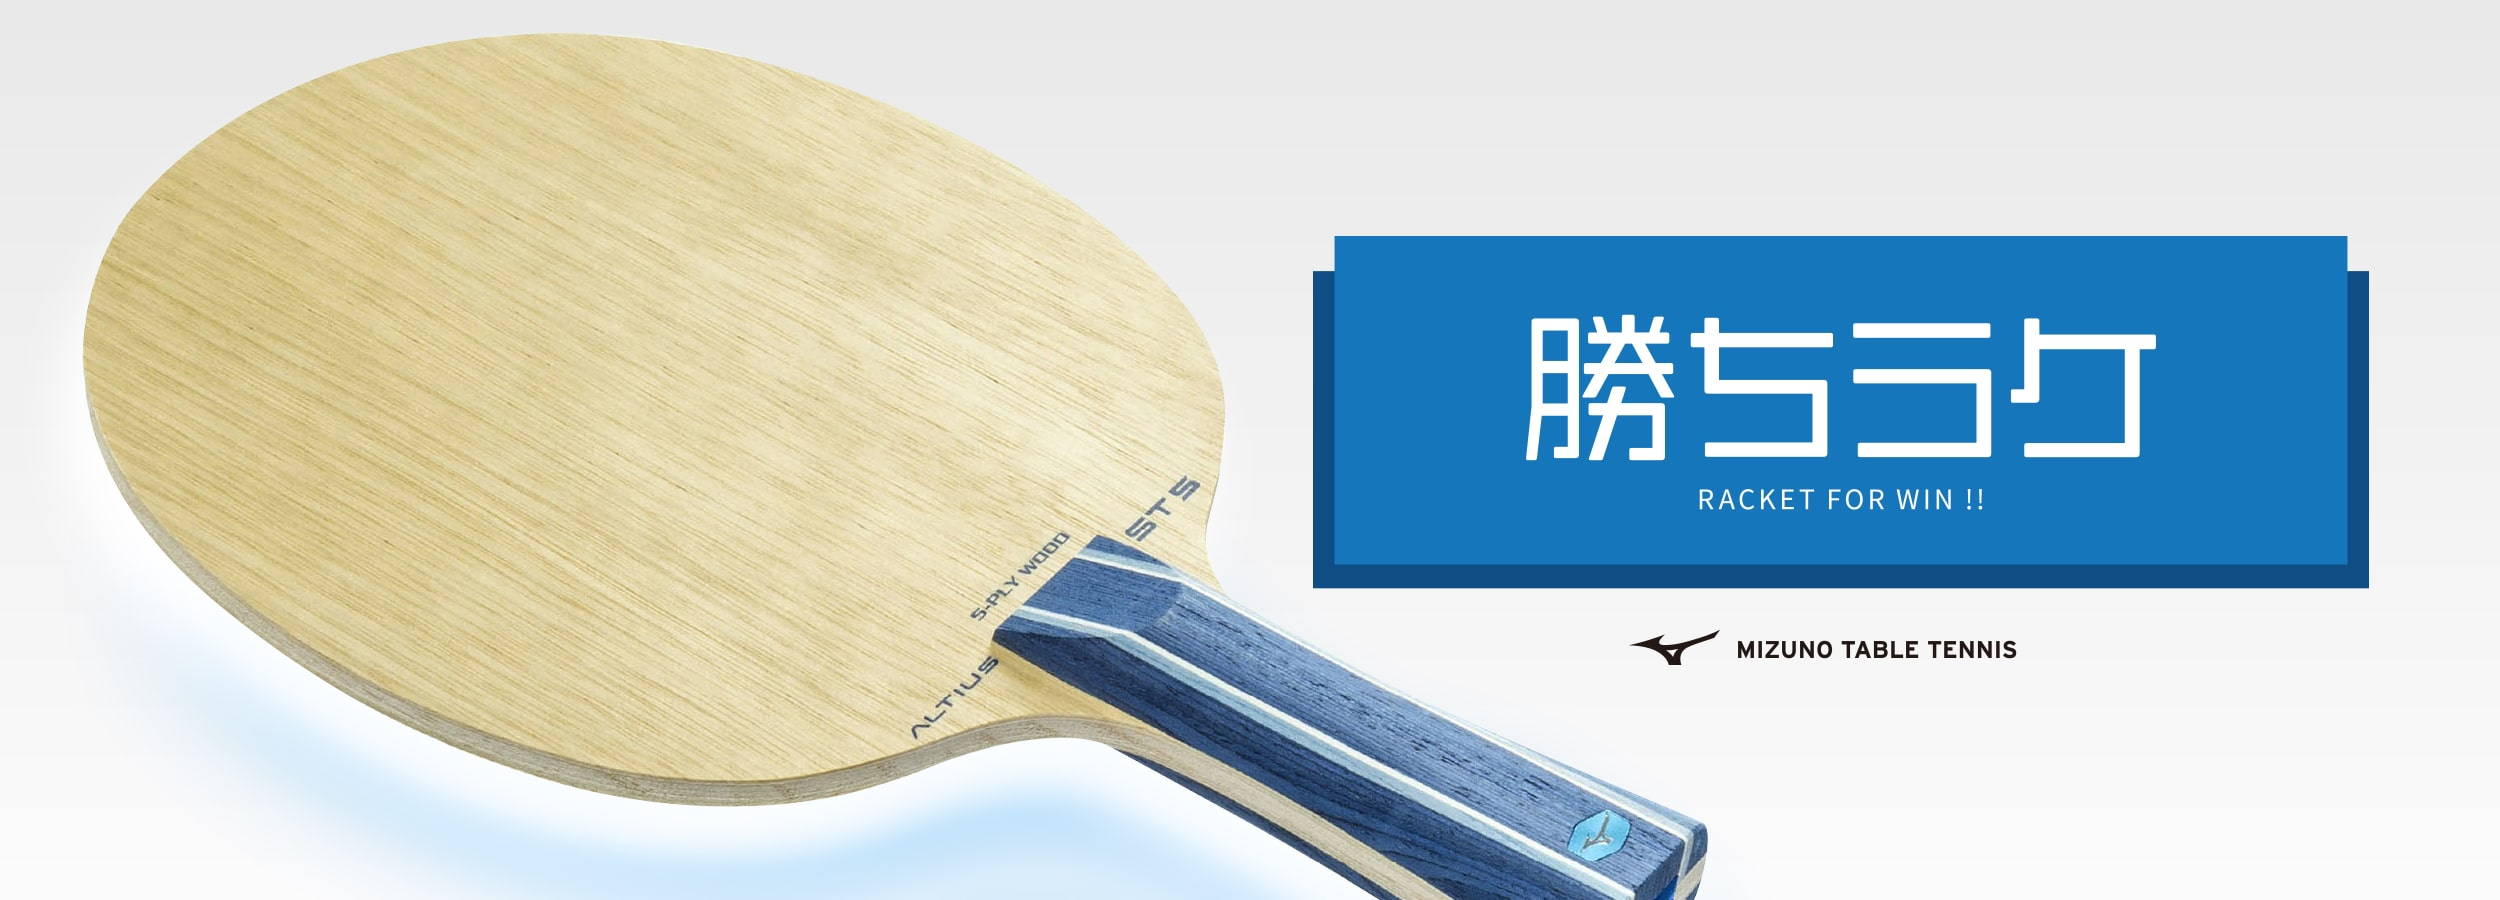 勝ちラケ RACKET FOR WIN!! MIZUNO TABLE TENNIS